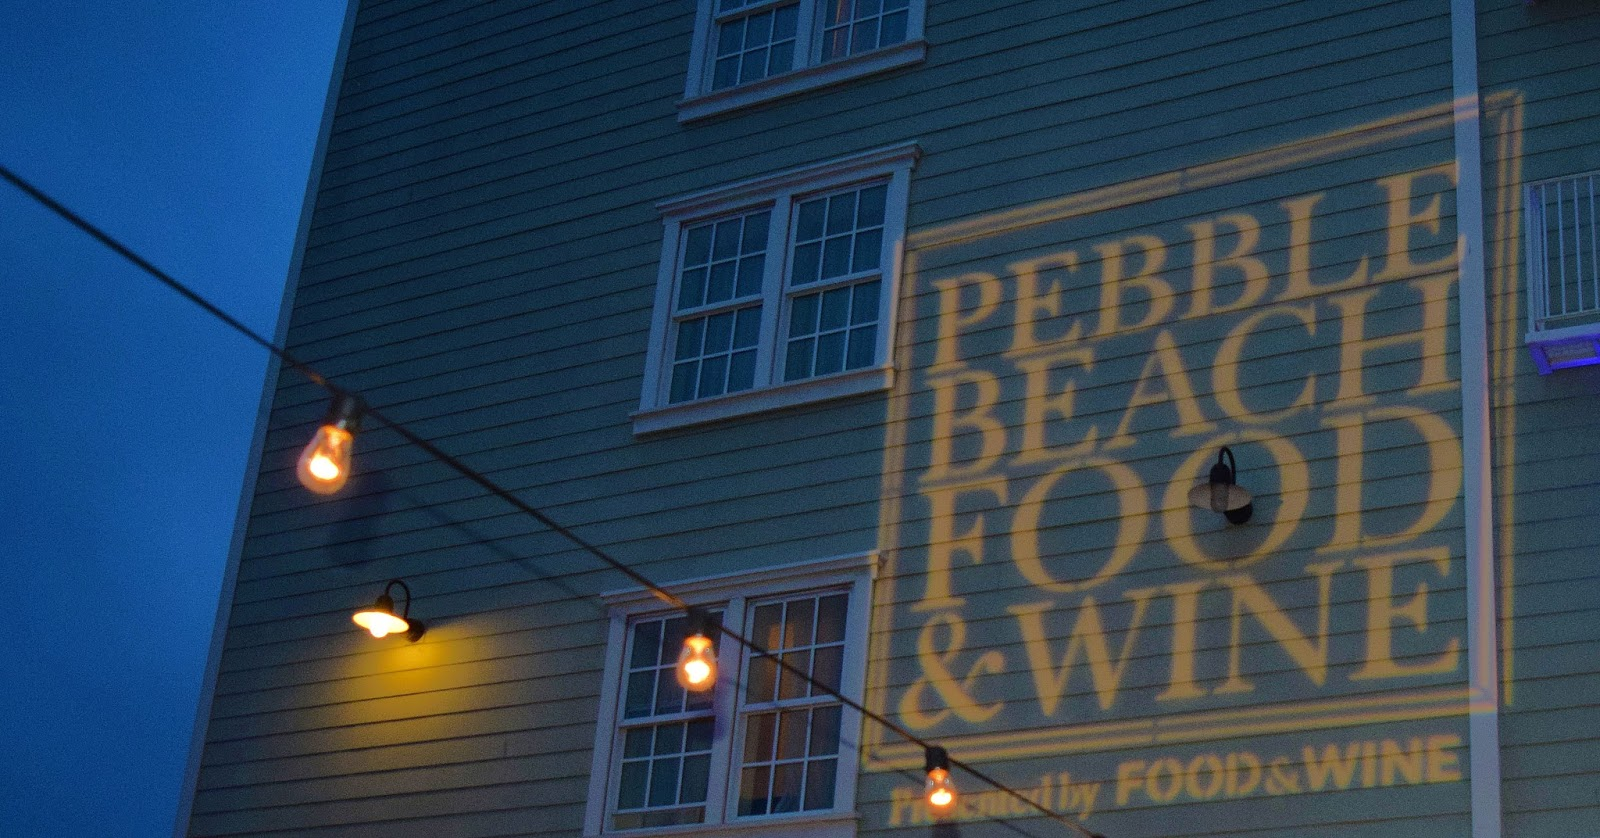 9th Annual Pebble Beach Food And Wine 2016 By The